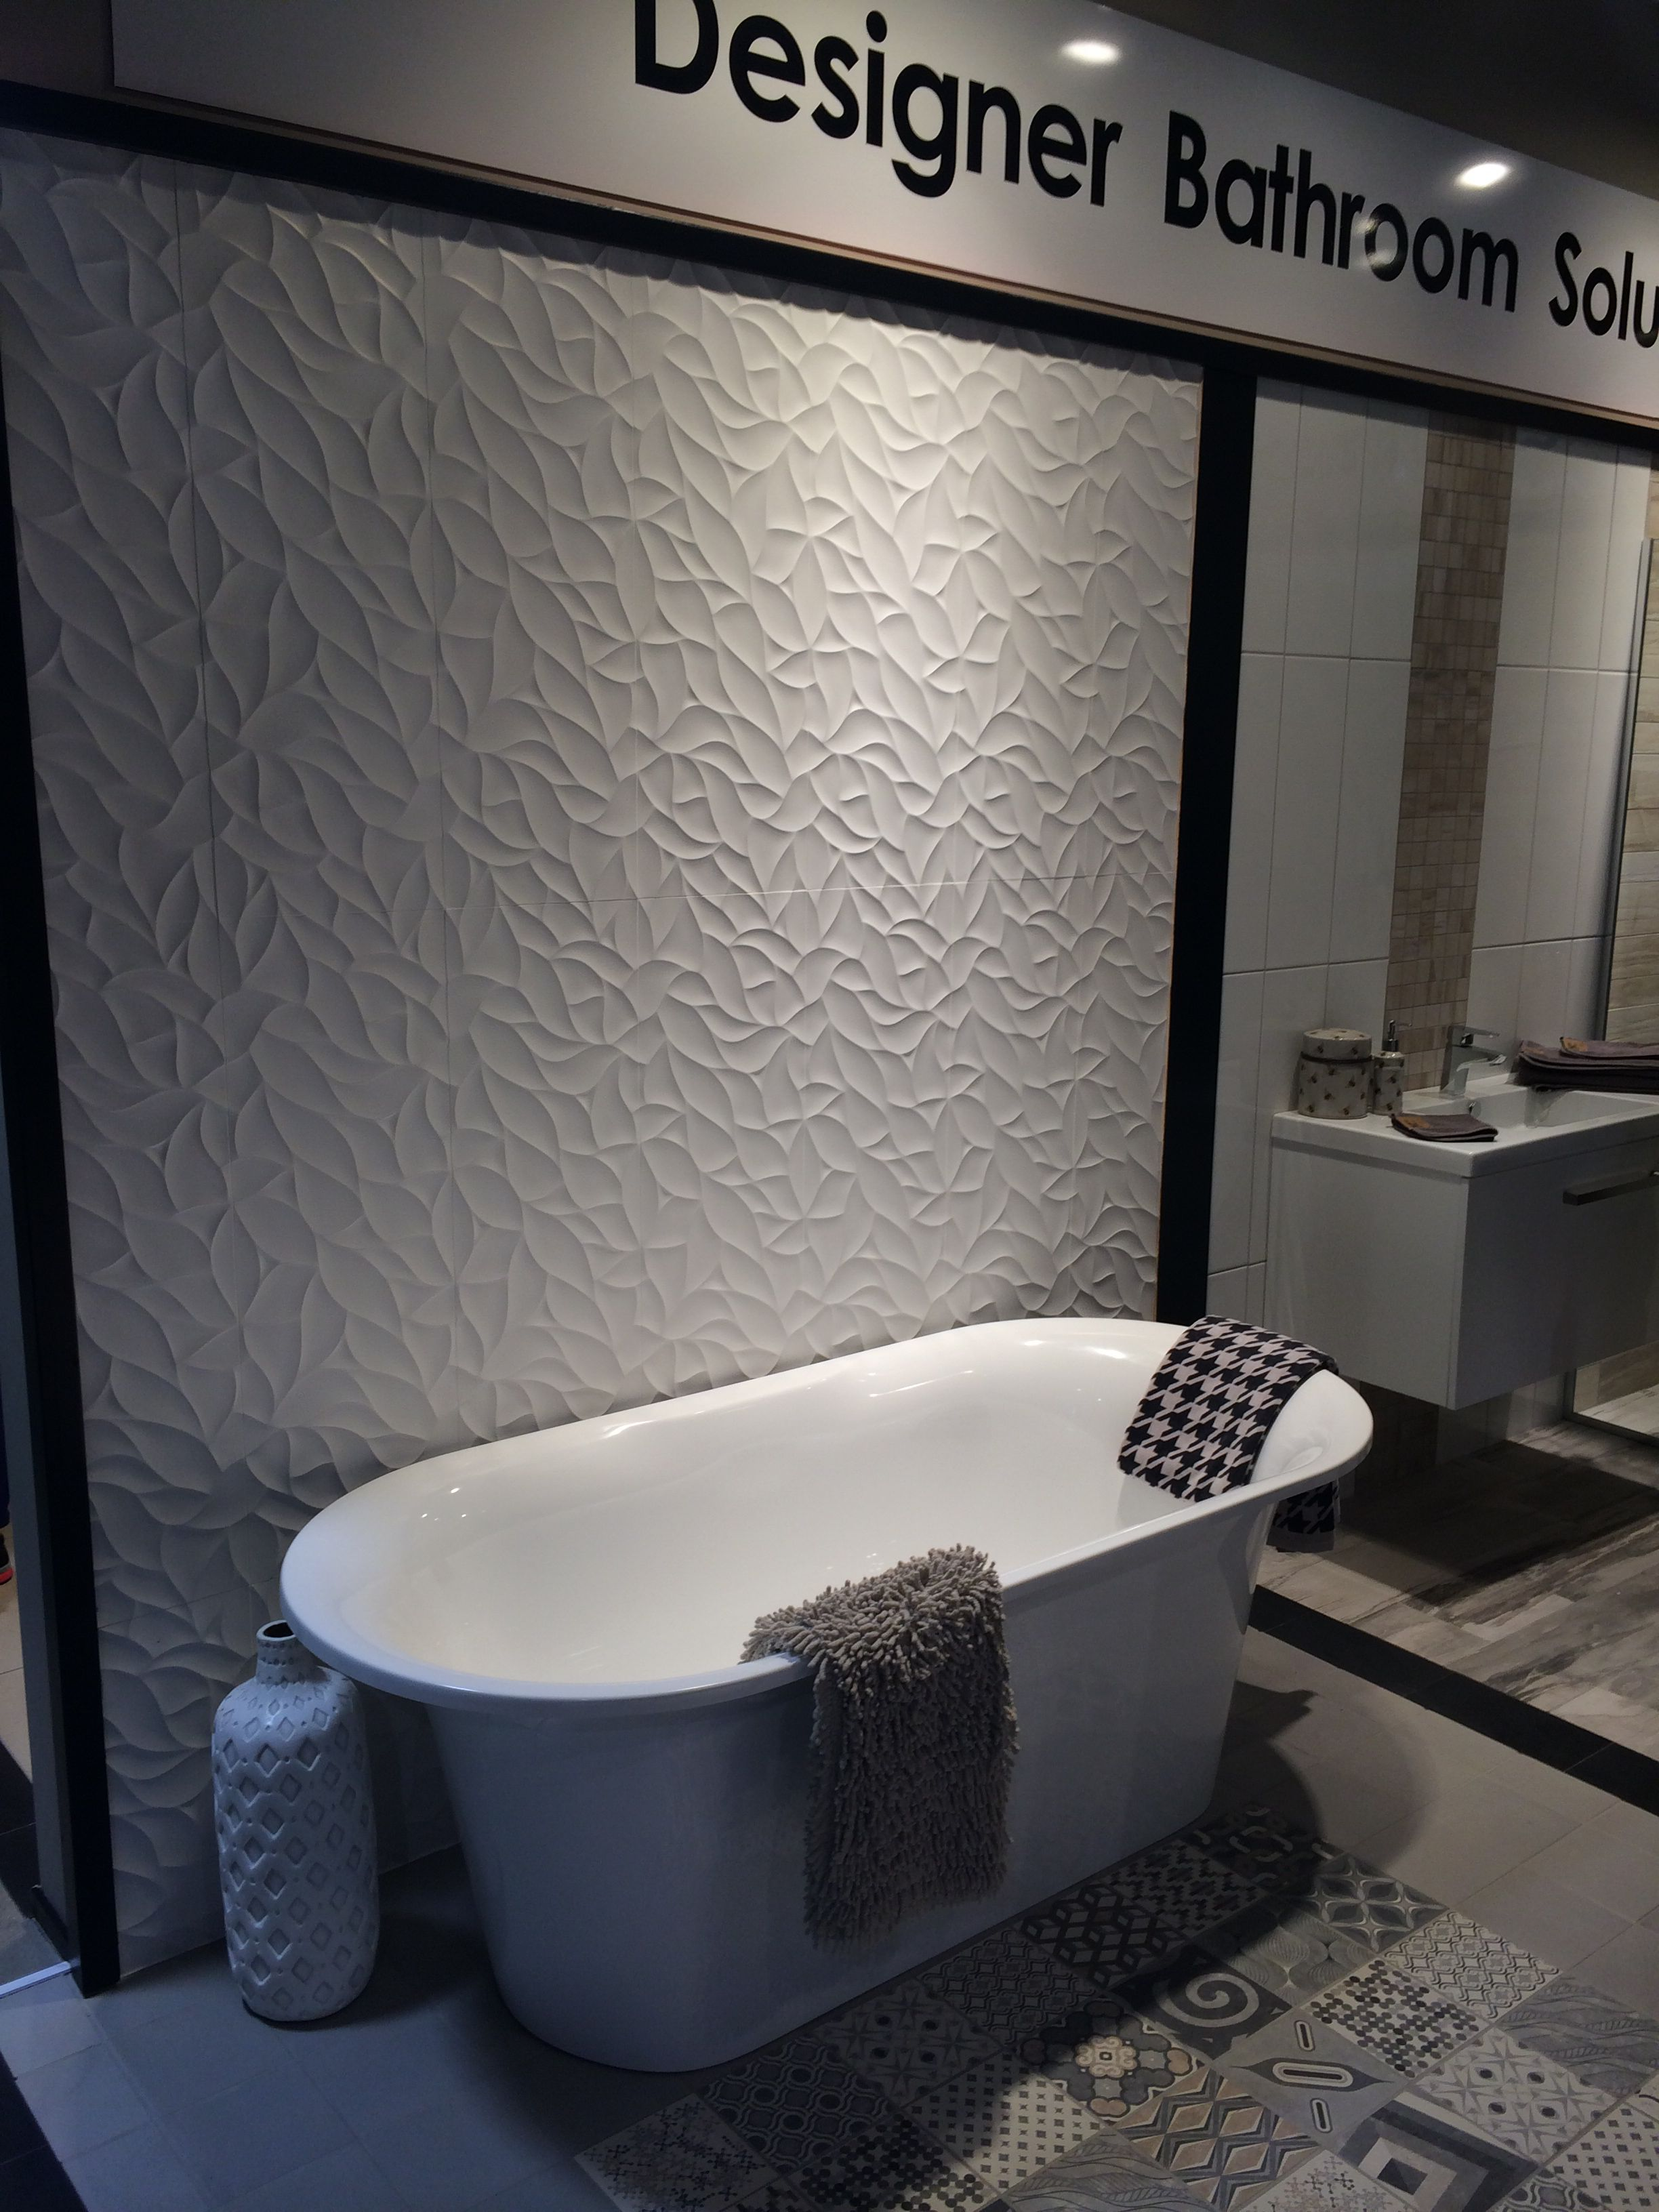 Monaco Bath By V A Robertson Wall Oxo Dec Blanco 316x900 By Porcelanosa Floor Europe Mix